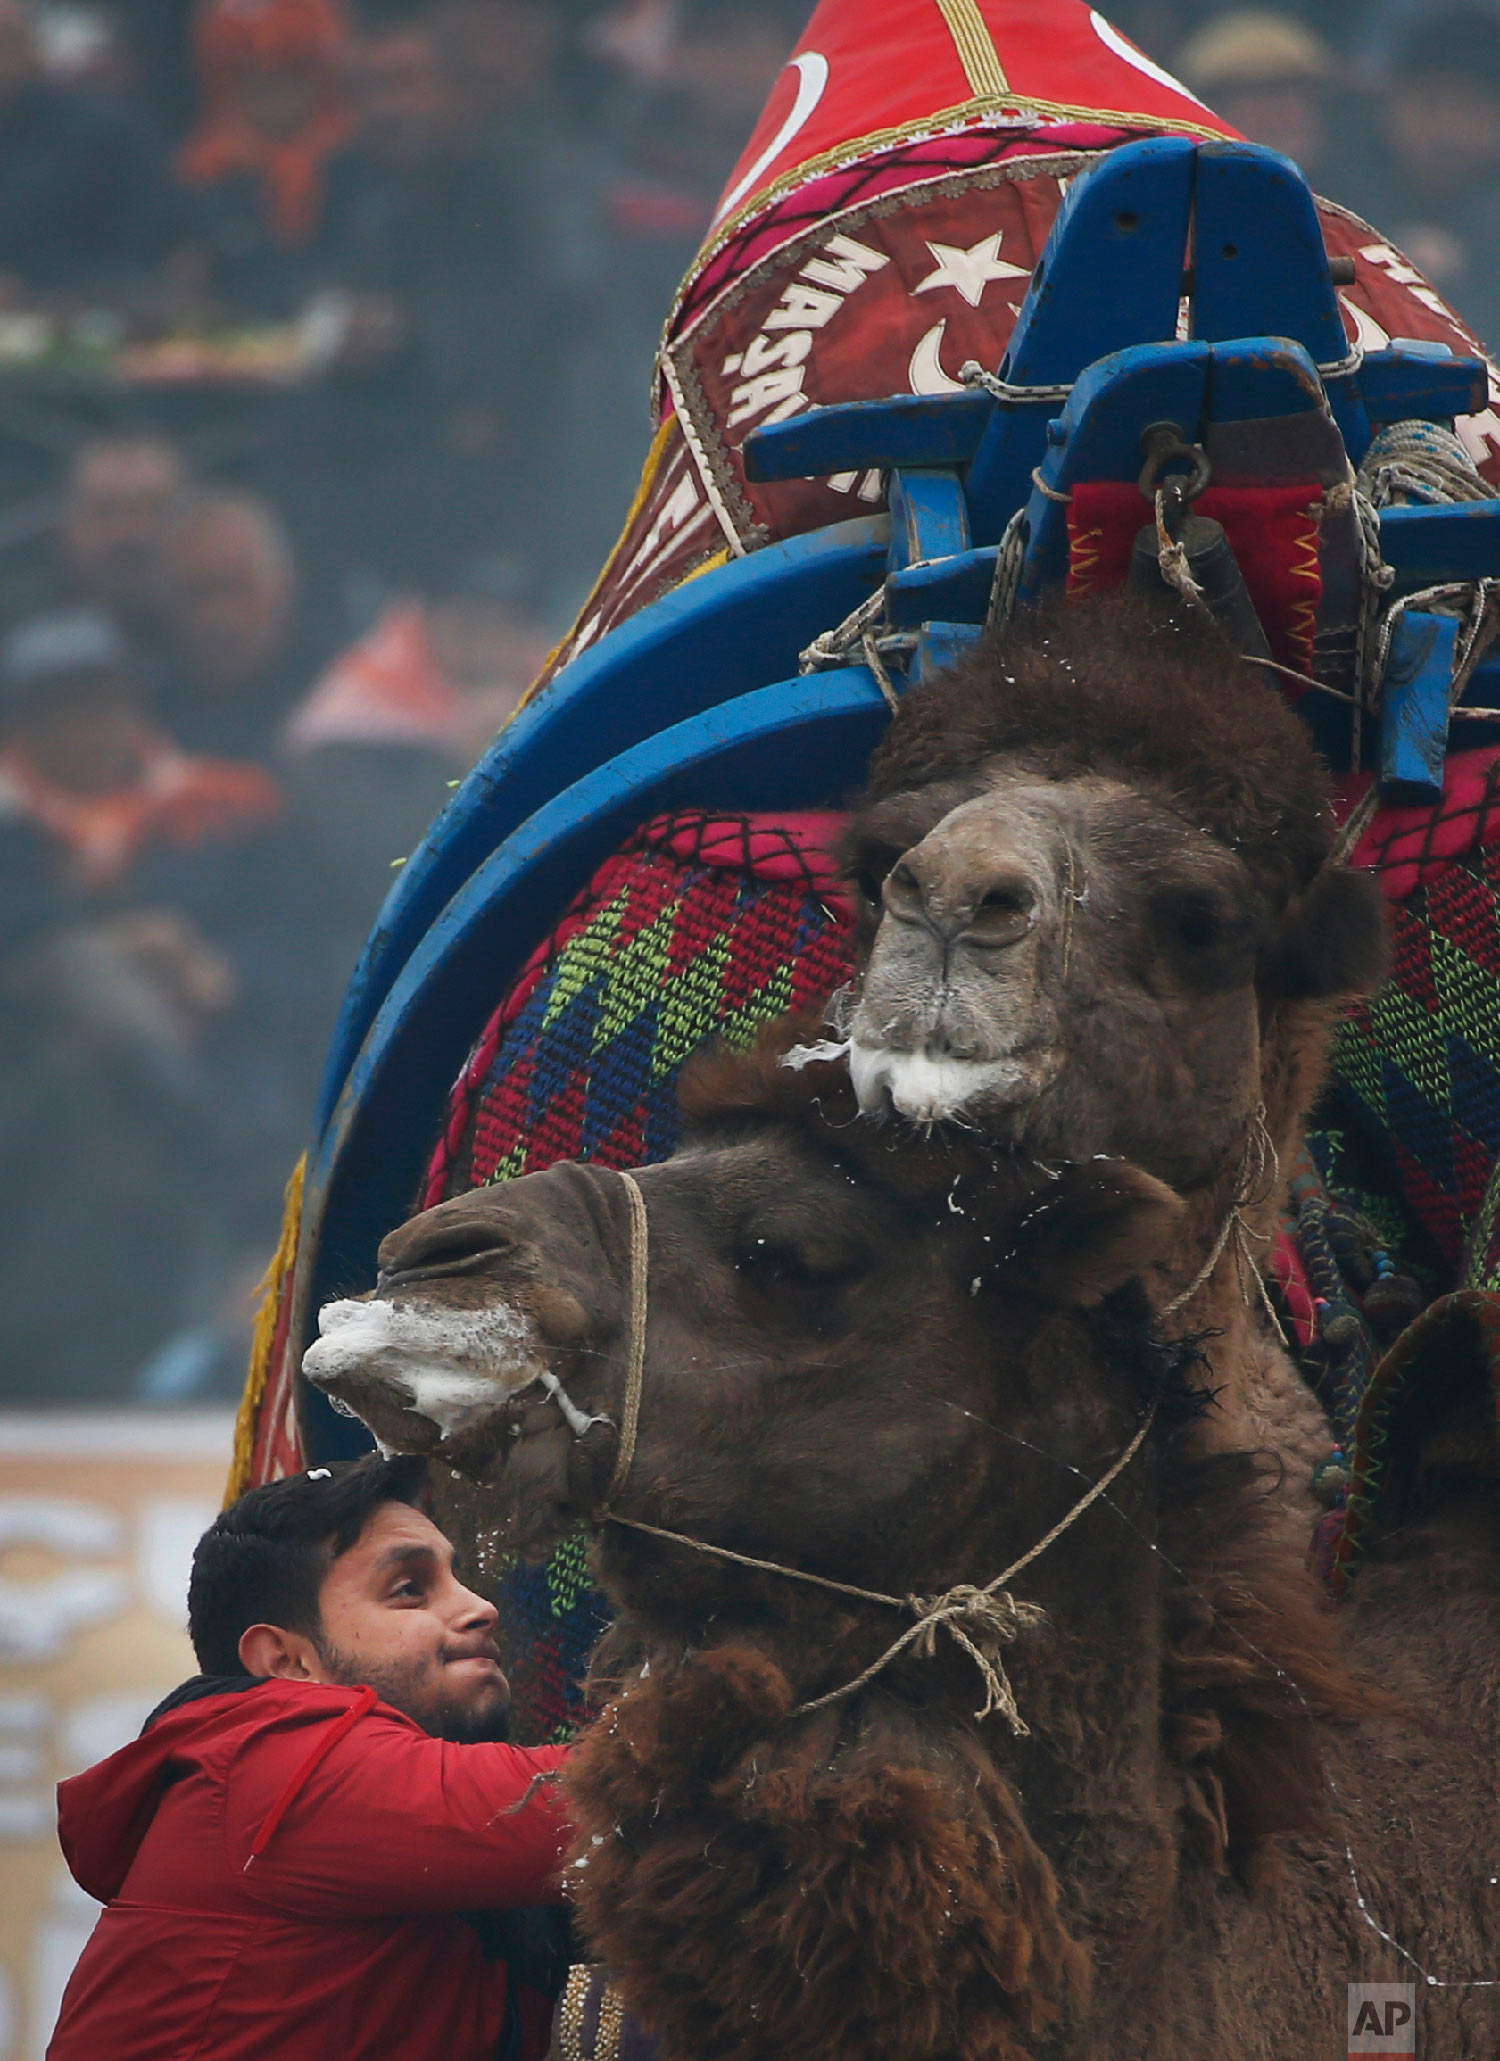 A camel owner tries to pull his camel as it wrestles with another during Turkey's largest camel wrestling festival in the Aegean town of Selcuk, Turkey, Sunday, Jan. 20, 2019.  (AP Photo/Lefteris Pitarakis)